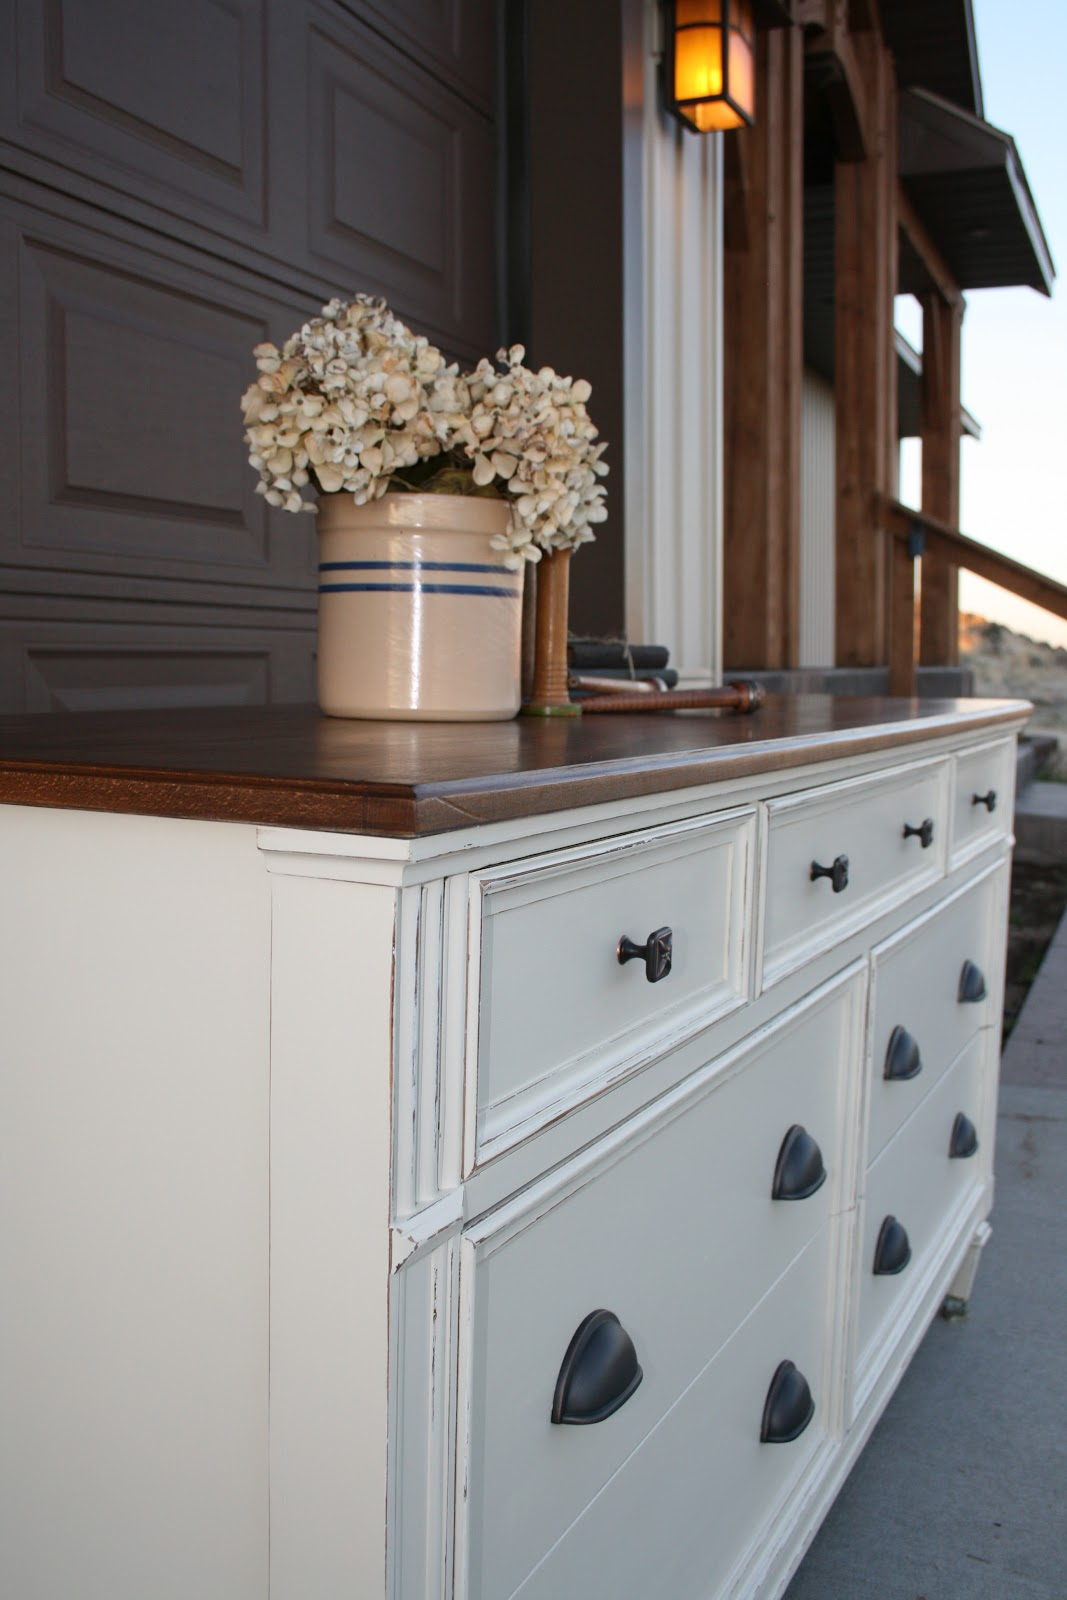 Antique Recreation Dresser Makeover In Cream And Wood